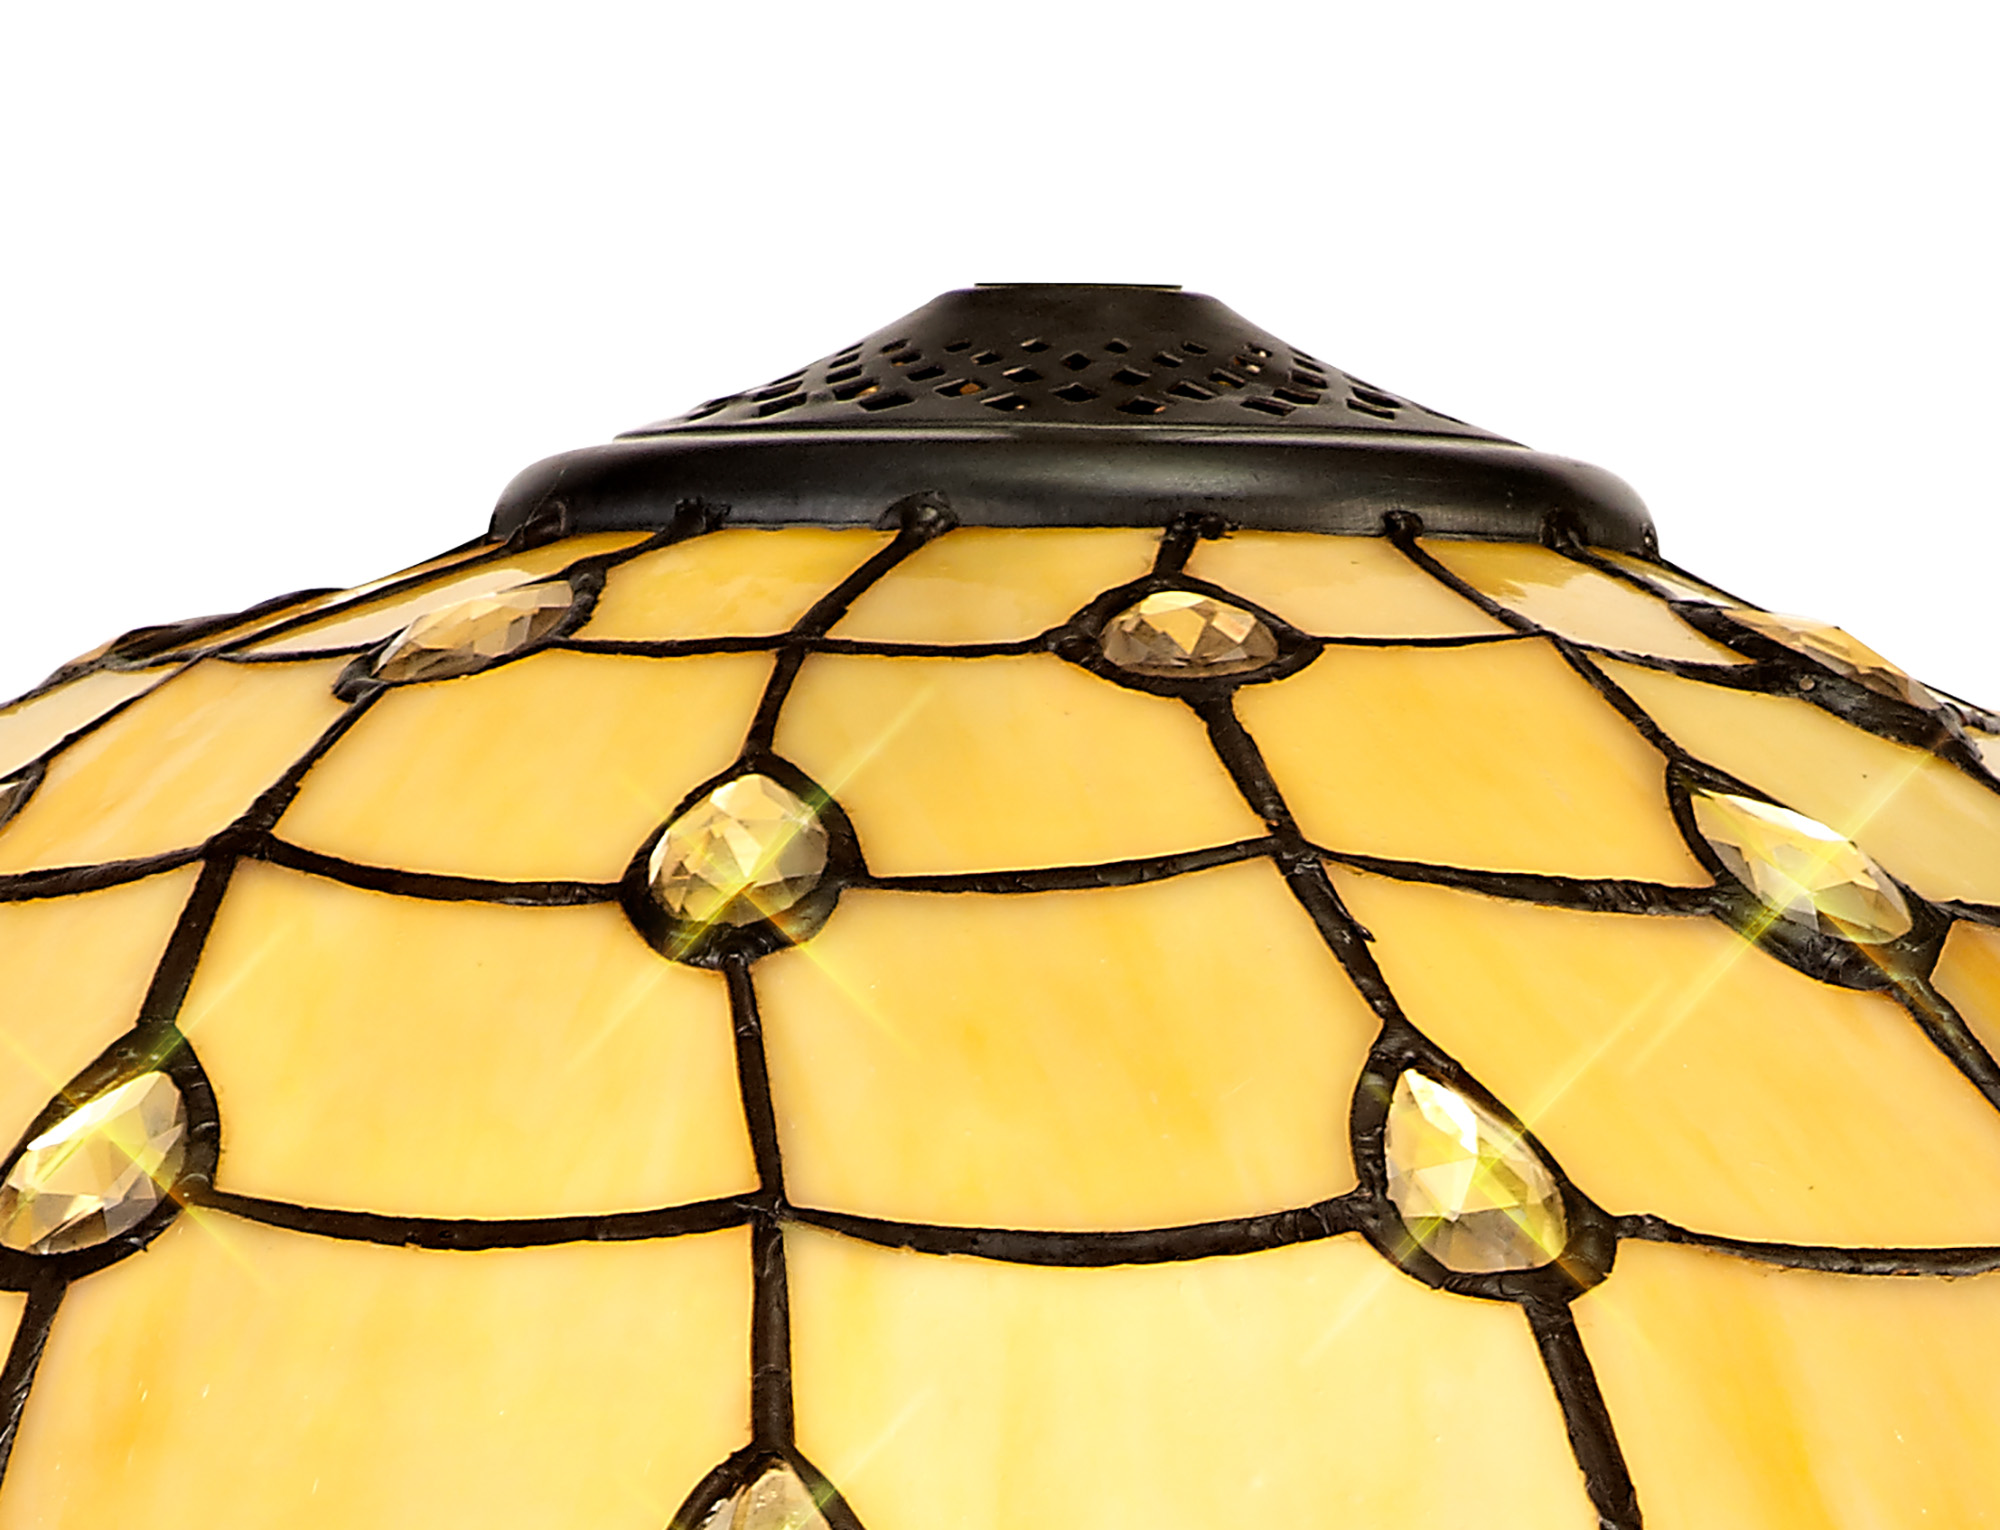 2 Light Octagonal Floor Lamp E27 With 40cm Tiffany Shade, Beige/Clear Crystal/Aged Antique Brass